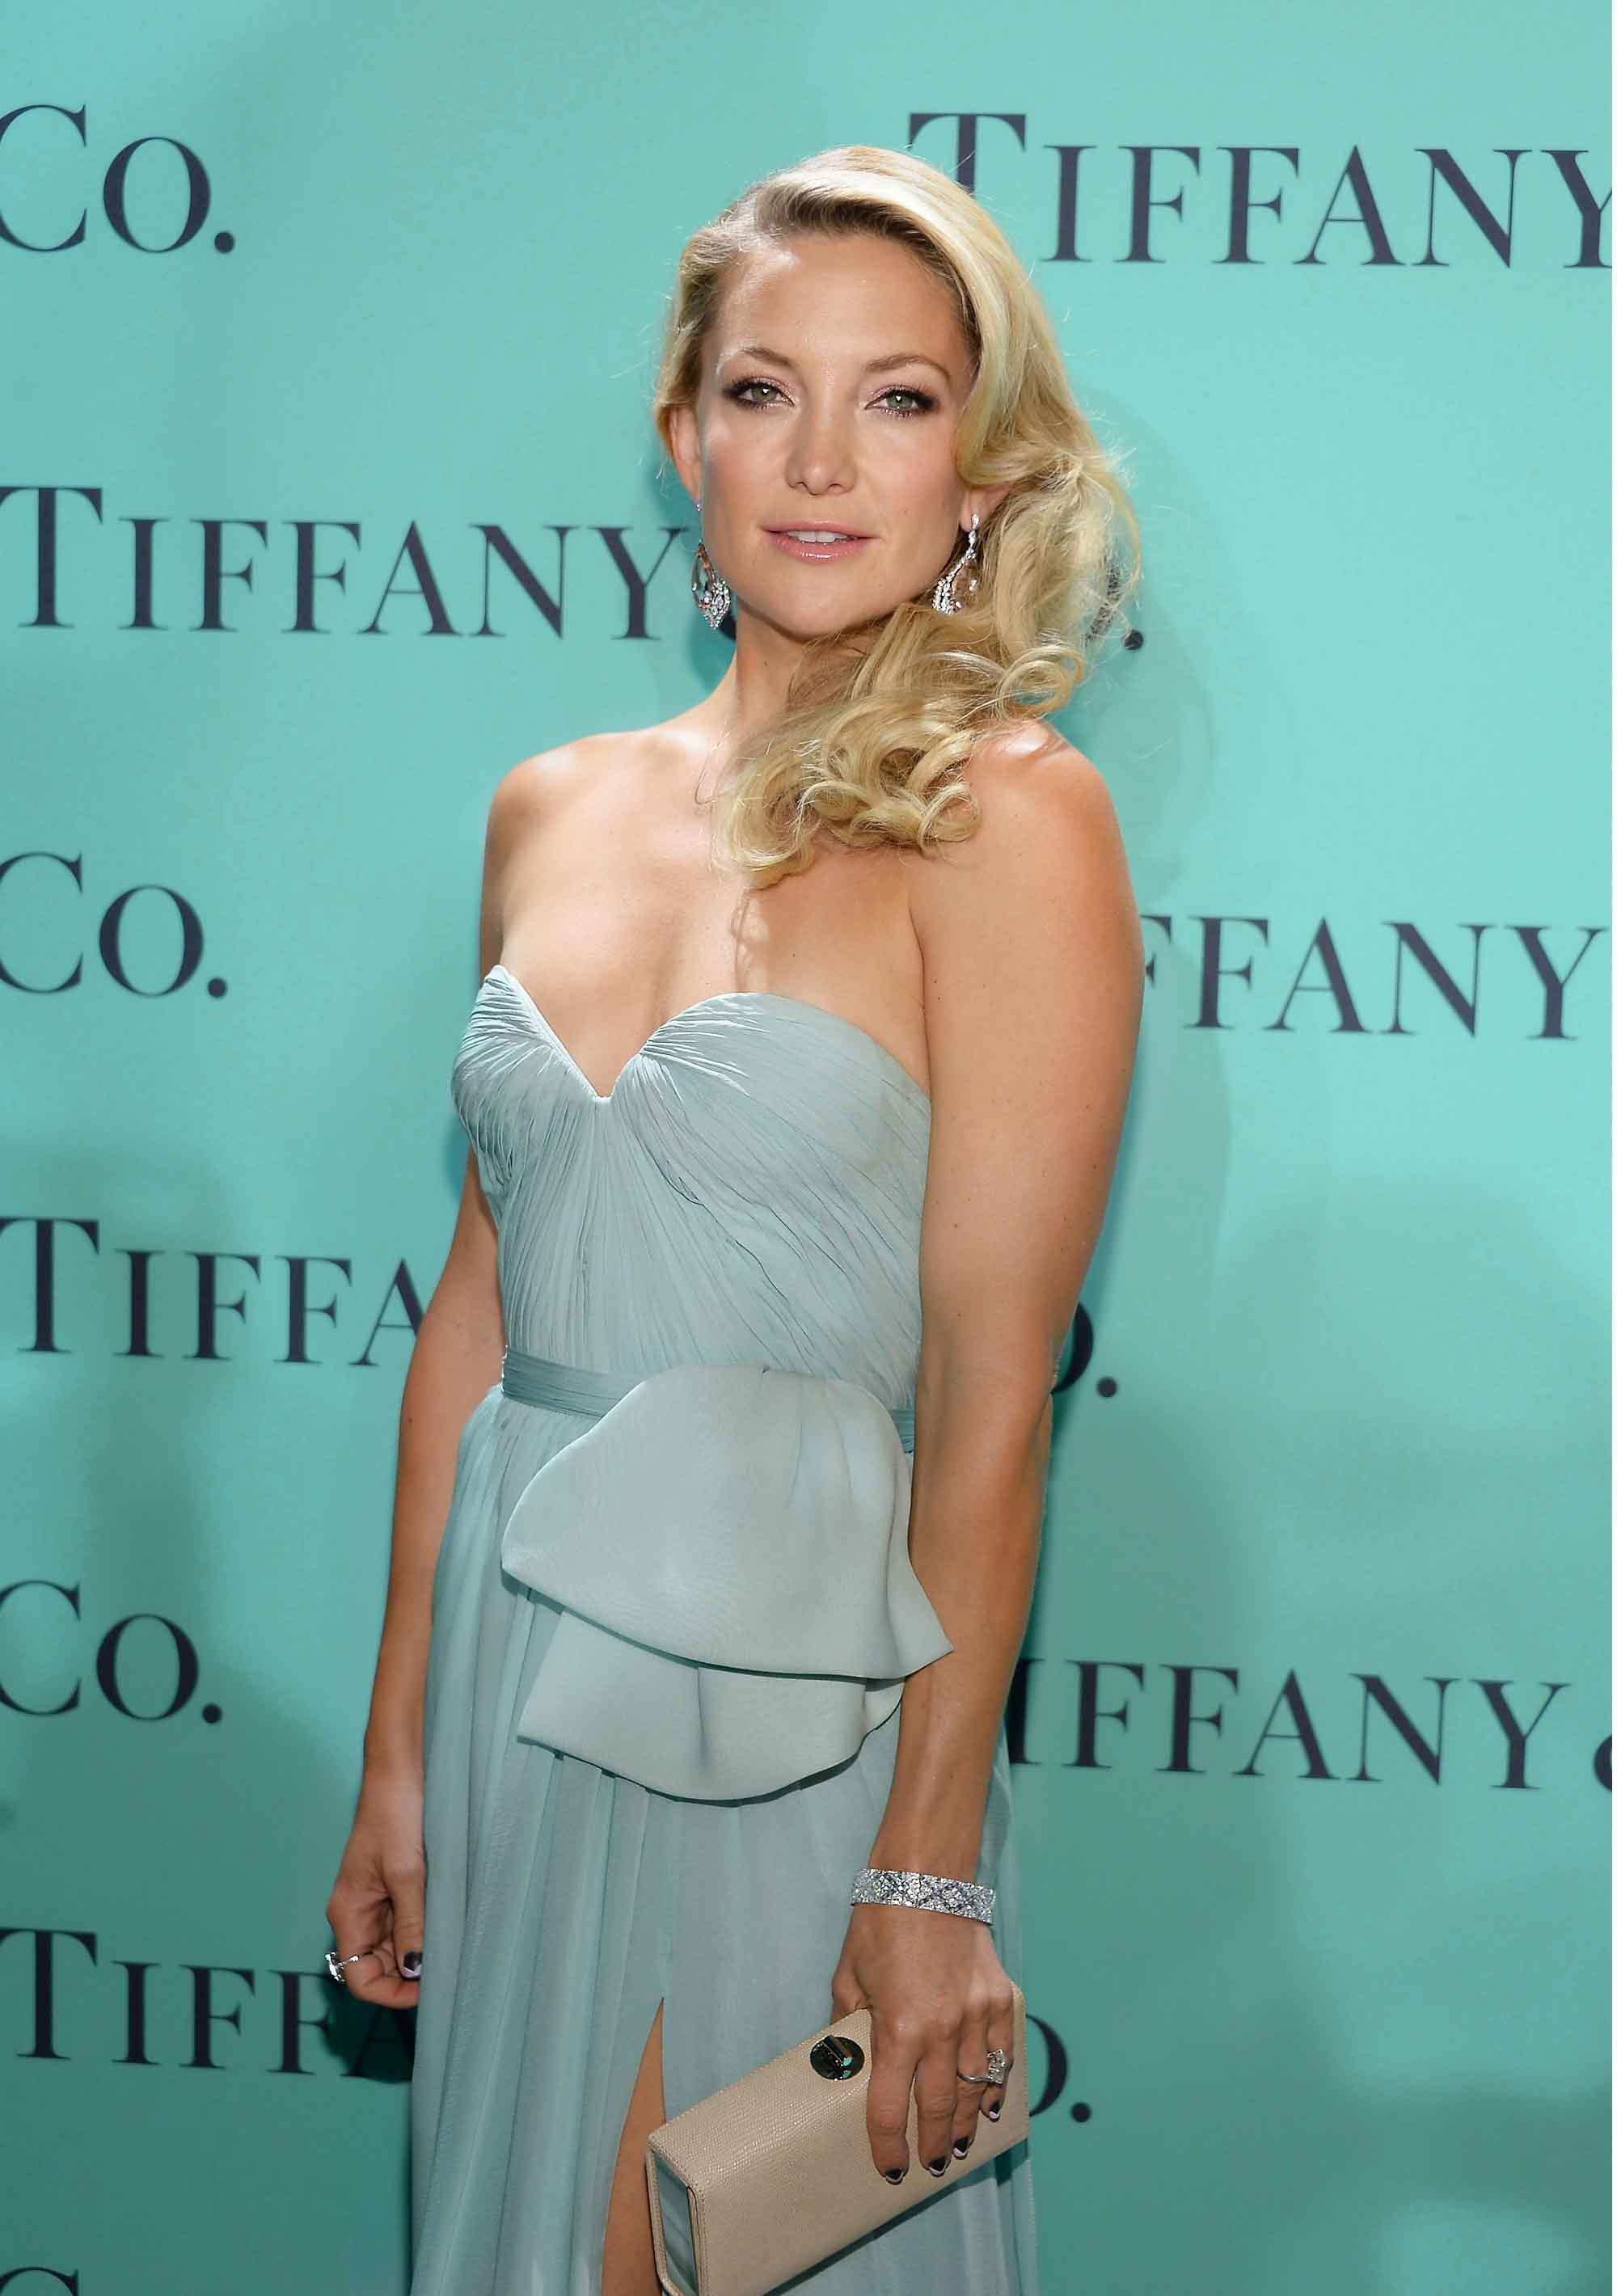 Kate Hudson at Tyffanys